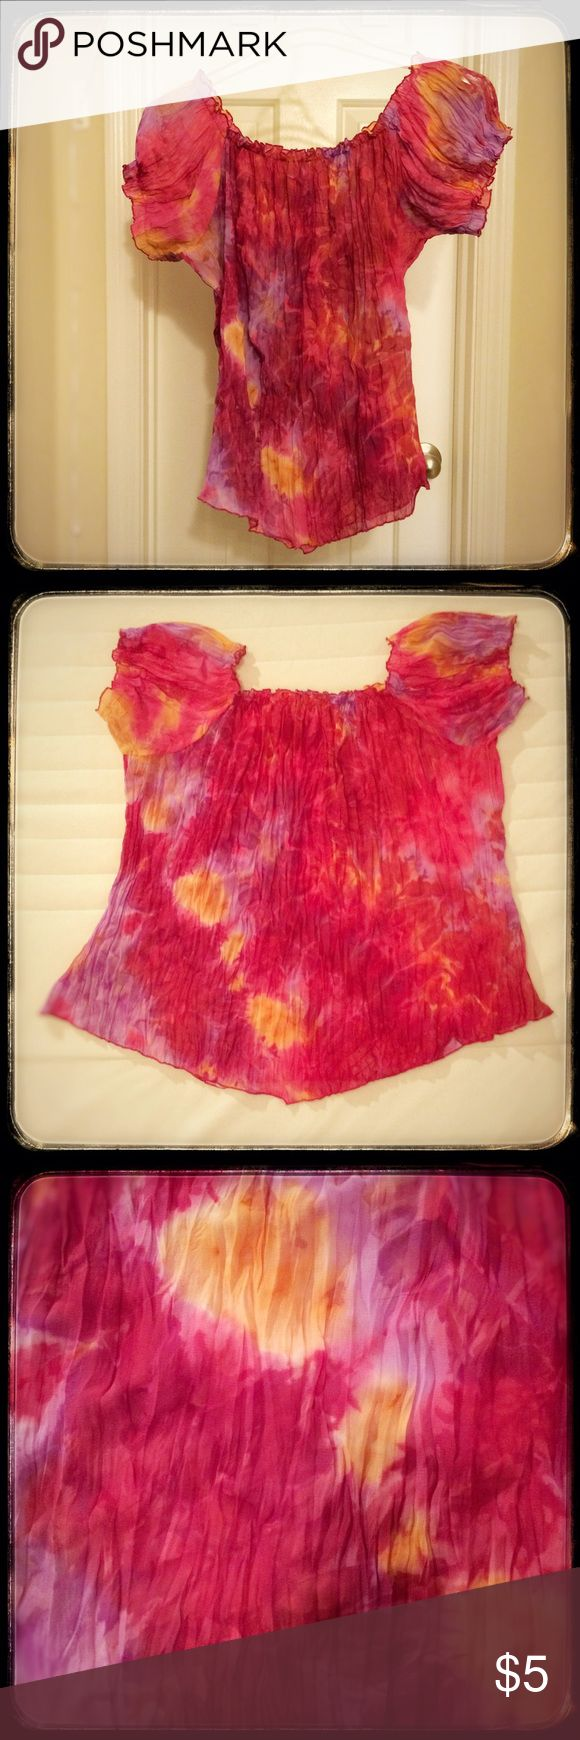 """Tie dyed hot pink scrunchy t-shirt top. Large No label. Loose fitting funky tie dyed top. Scrunchy fabric. Elastic sleeves and elastic square neckline. Lay flat loose stretch bust measures approximately 22"""" across. Tops Tees - Short Sleeve"""